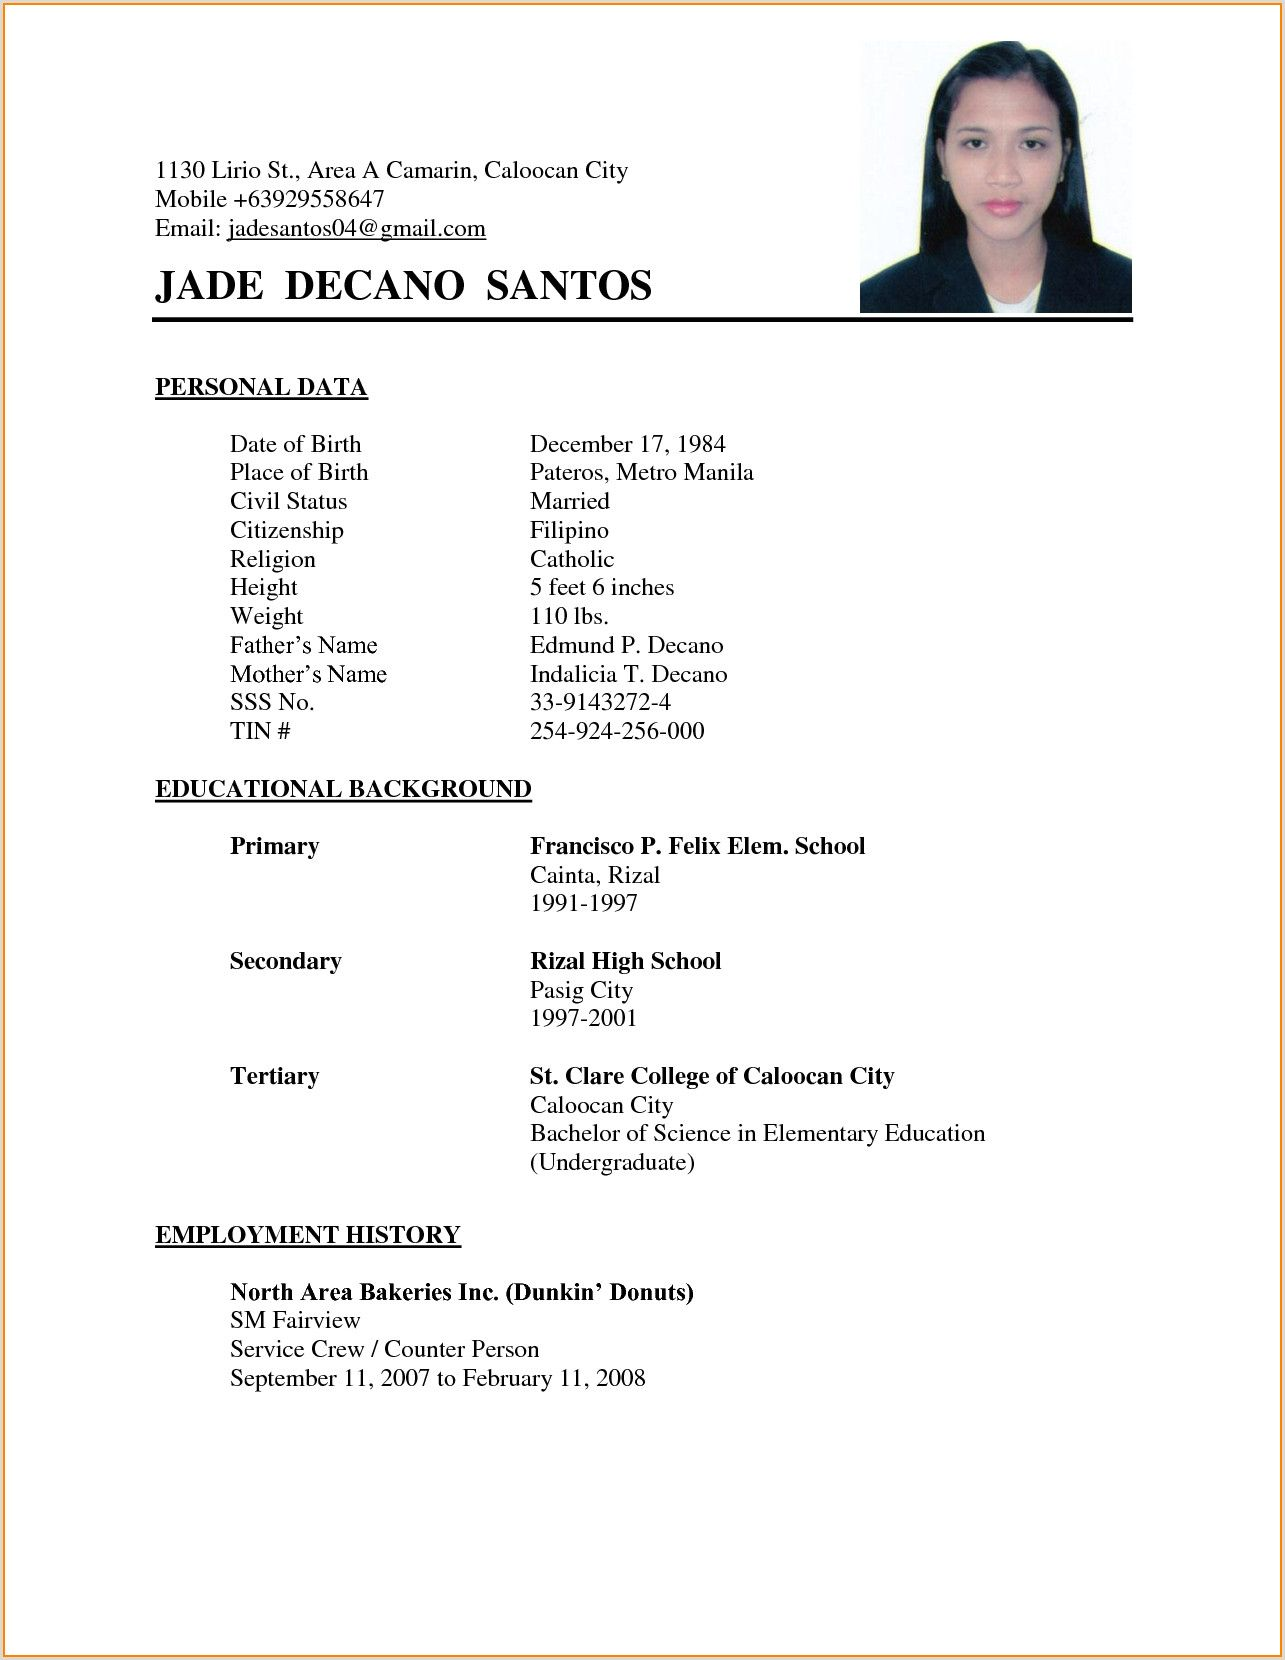 simple resume format examples thank you letter chemotherapy nurse software quality Resume Simple Resume Format Examples